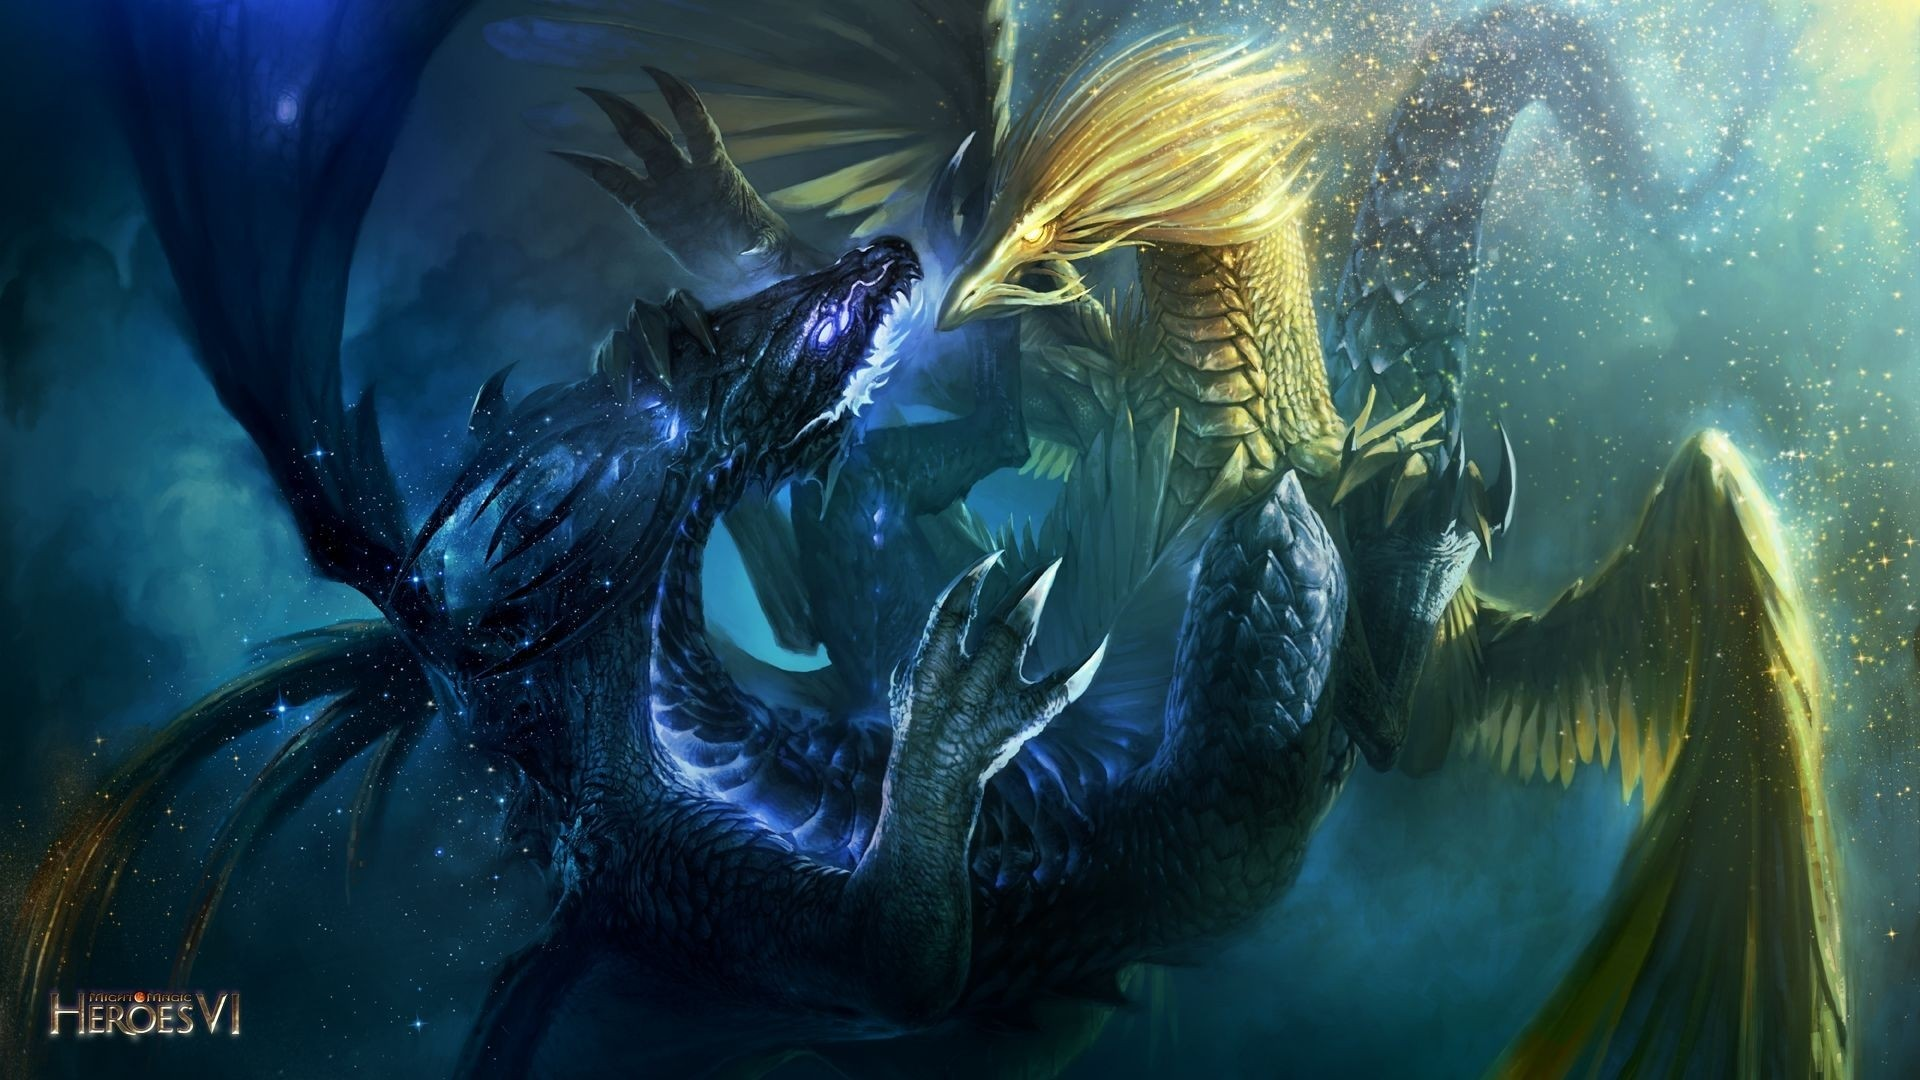 dragon wallpaper hd 1080p ·① download free amazing backgrounds for